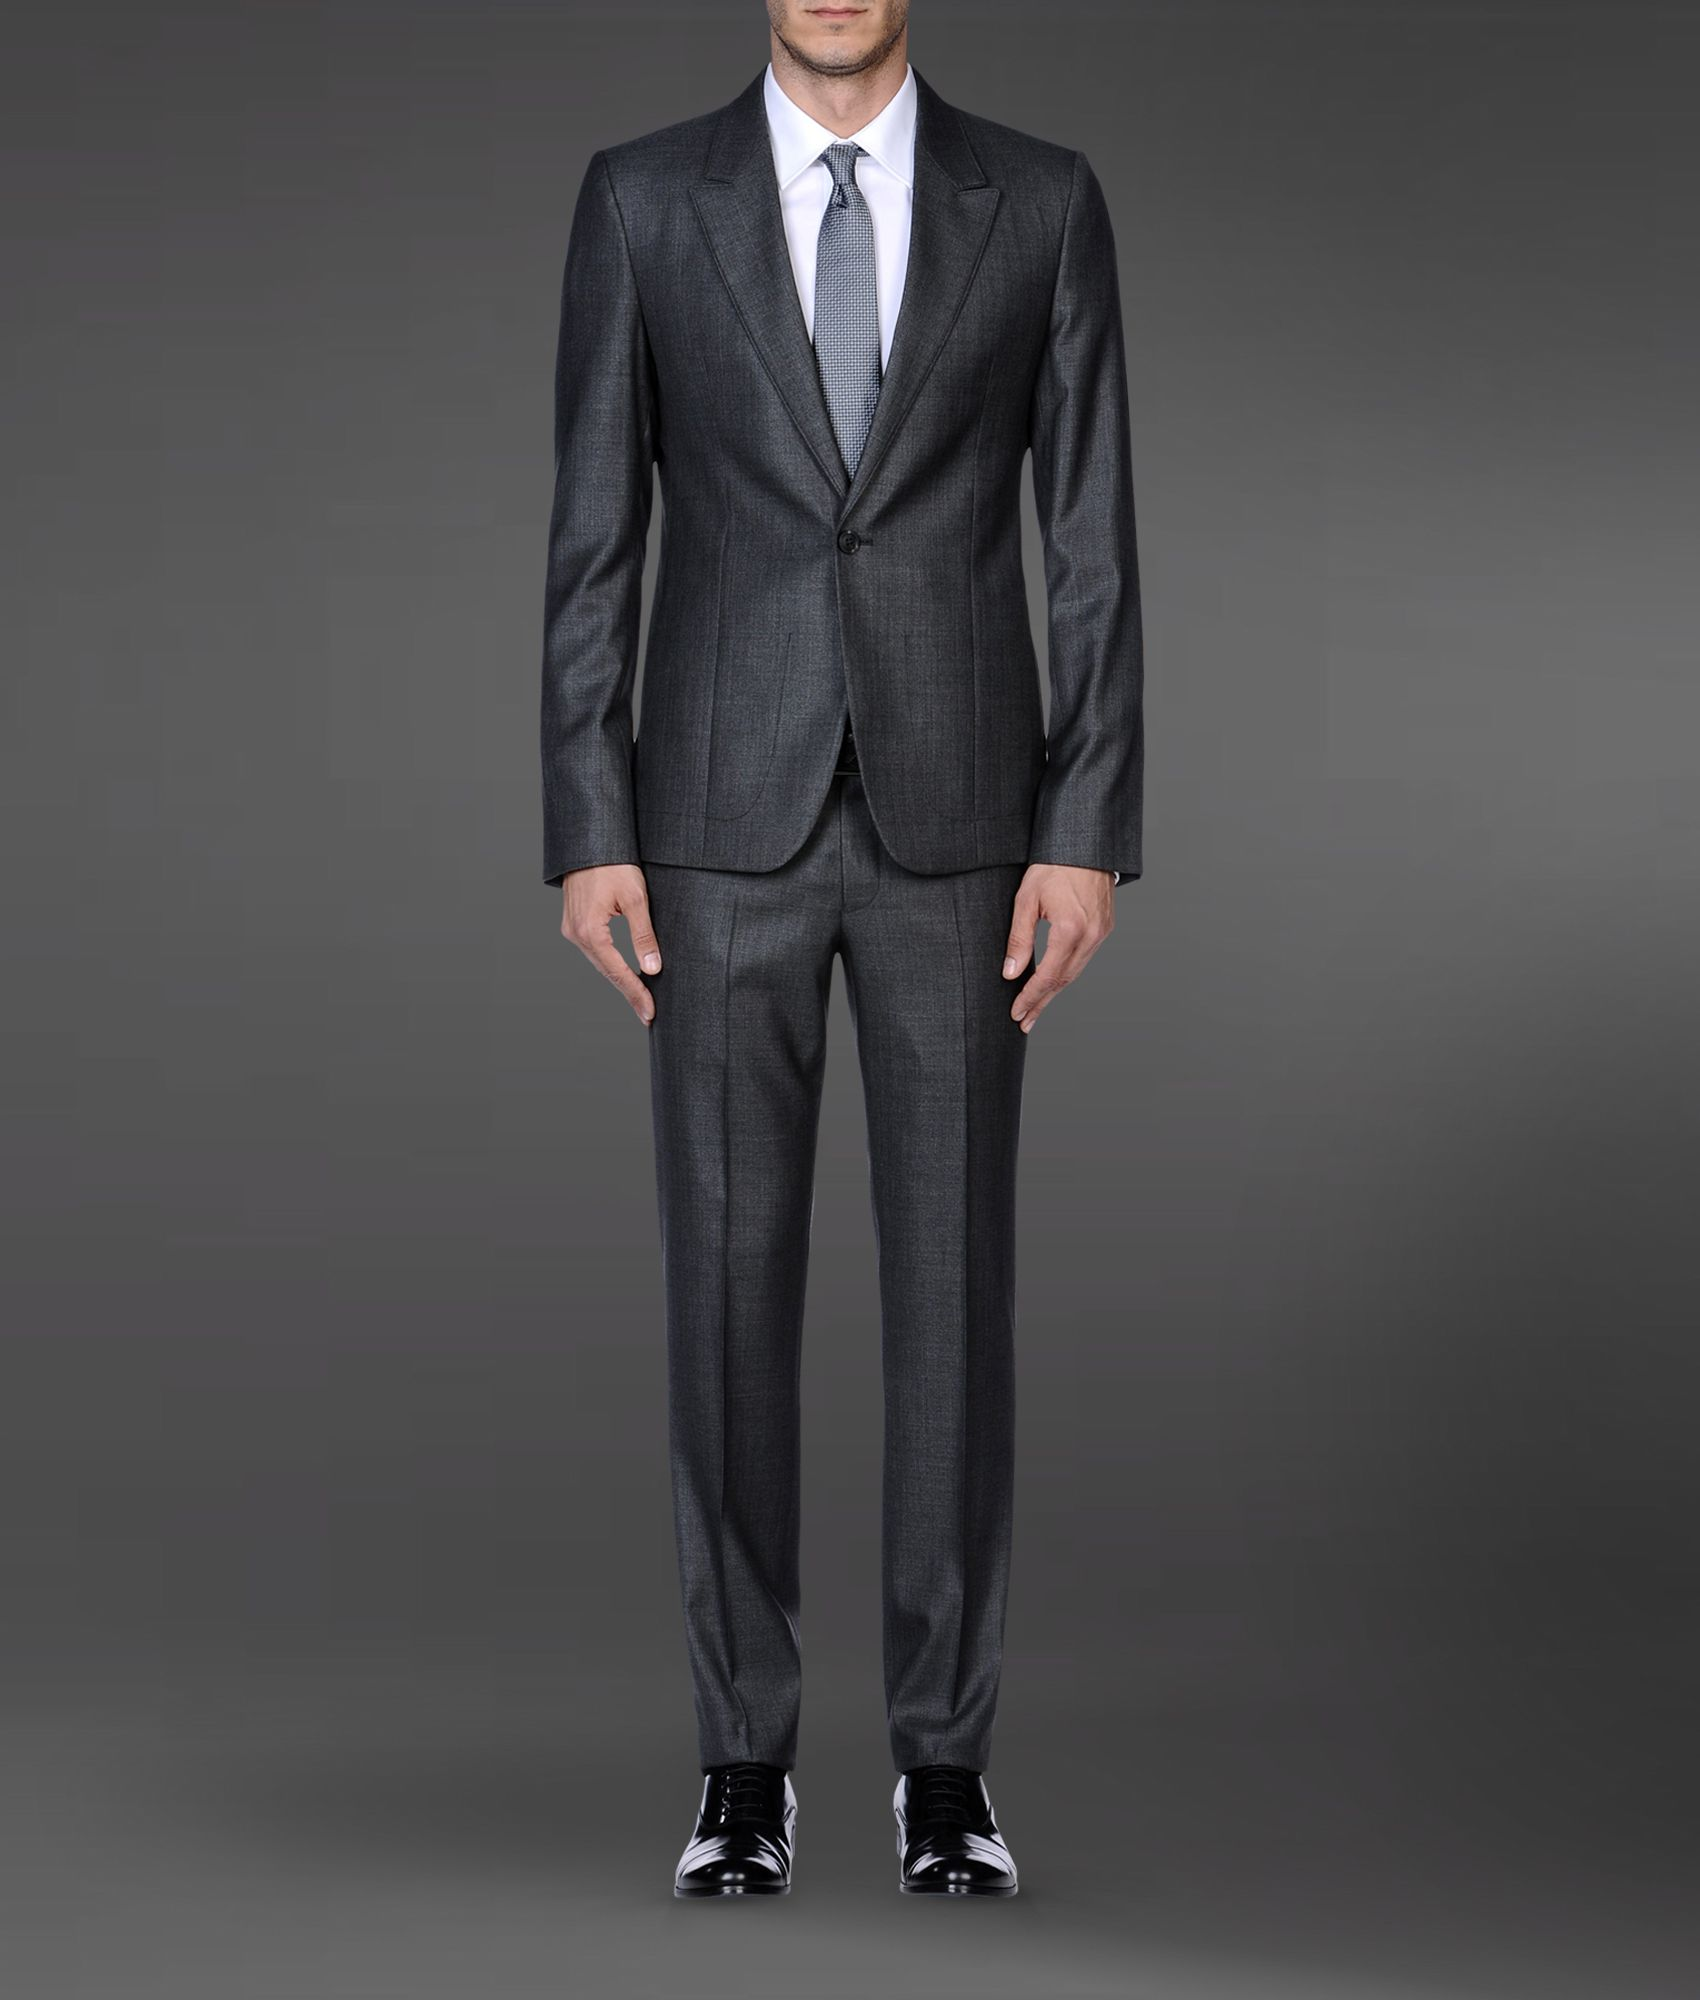 ba980c68a8 Emporio Armani Gray Supreme Suit in Stretch Wool and Silk for men